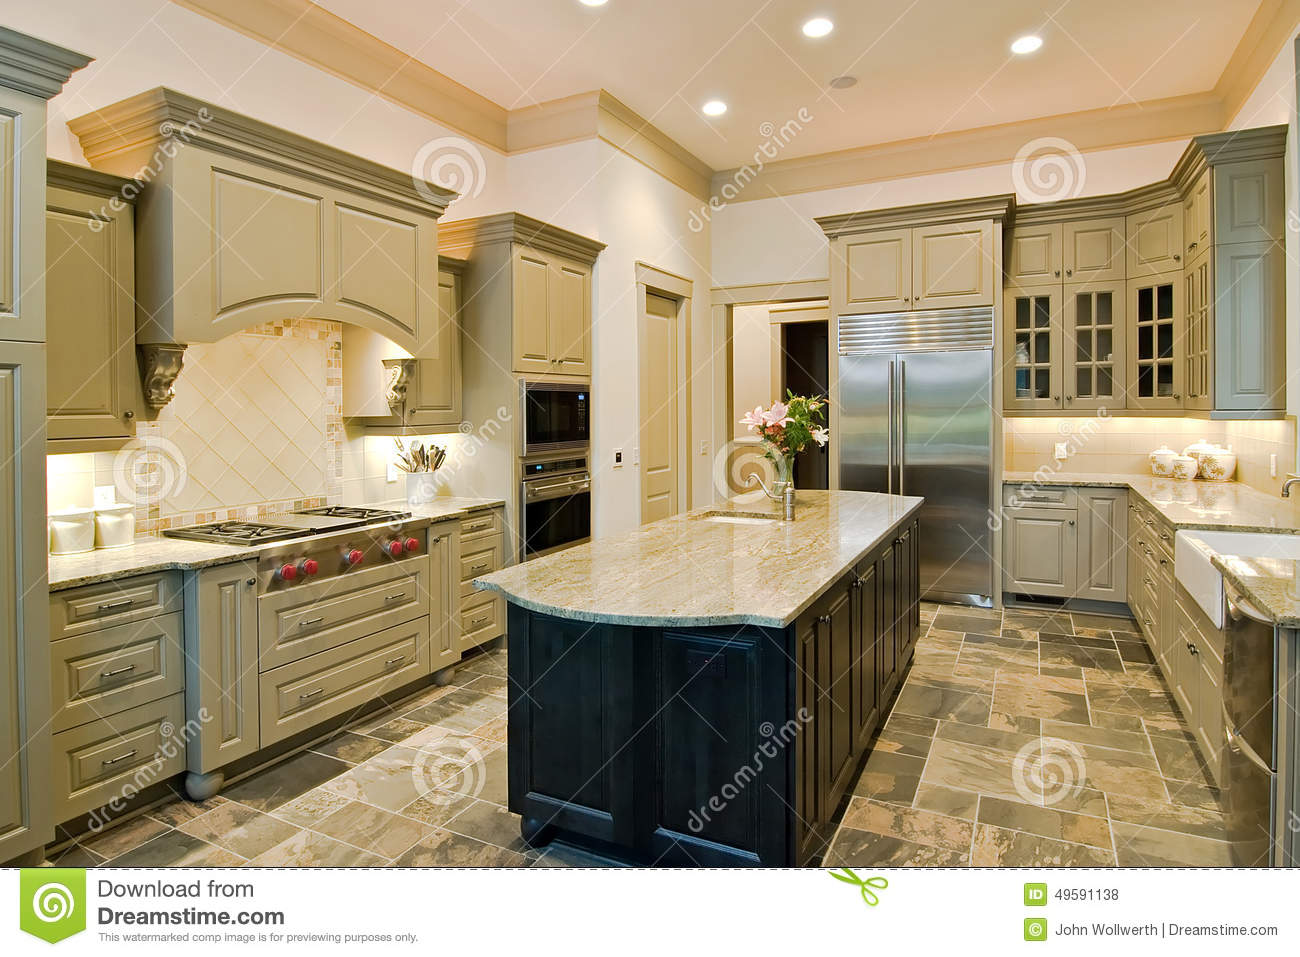 Expensive Kitchen Stock Photo Image Of Comfortable Inside 49591138